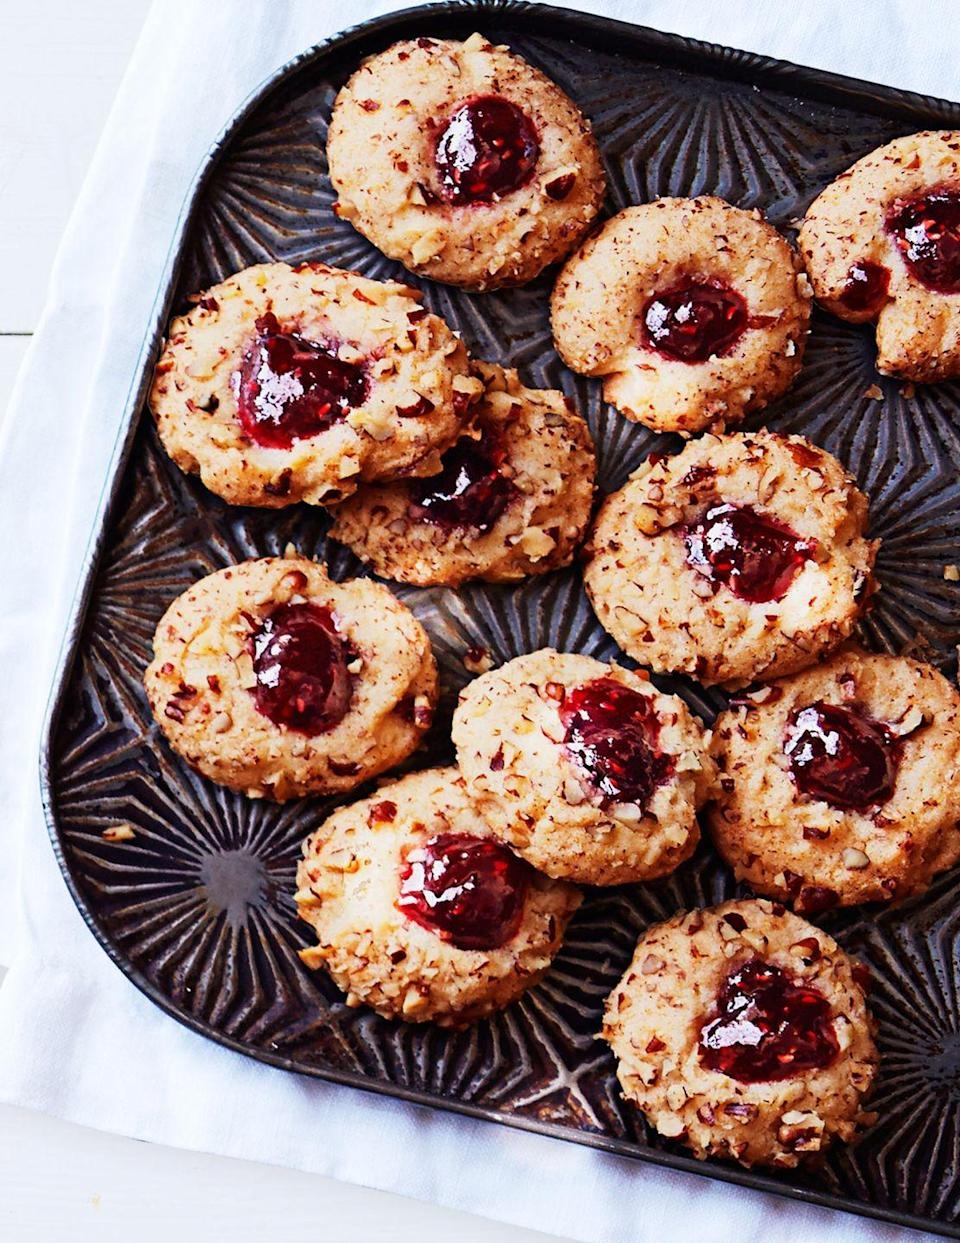 """<p>Simple cookies sprinkled with walnuts and topped with jam are easy way to add festive color your holiday cookie spread.</p><p><em><a href=""""https://www.goodhousekeeping.com/food-recipes/a16189/jammy-thumbprints-recipe-ghk1214/"""" rel=""""nofollow noopener"""" target=""""_blank"""" data-ylk=""""slk:Get the recipe for Jammy Thumbprints »"""" class=""""link rapid-noclick-resp"""">Get the recipe for Jammy Thumbprints »</a></em></p>"""